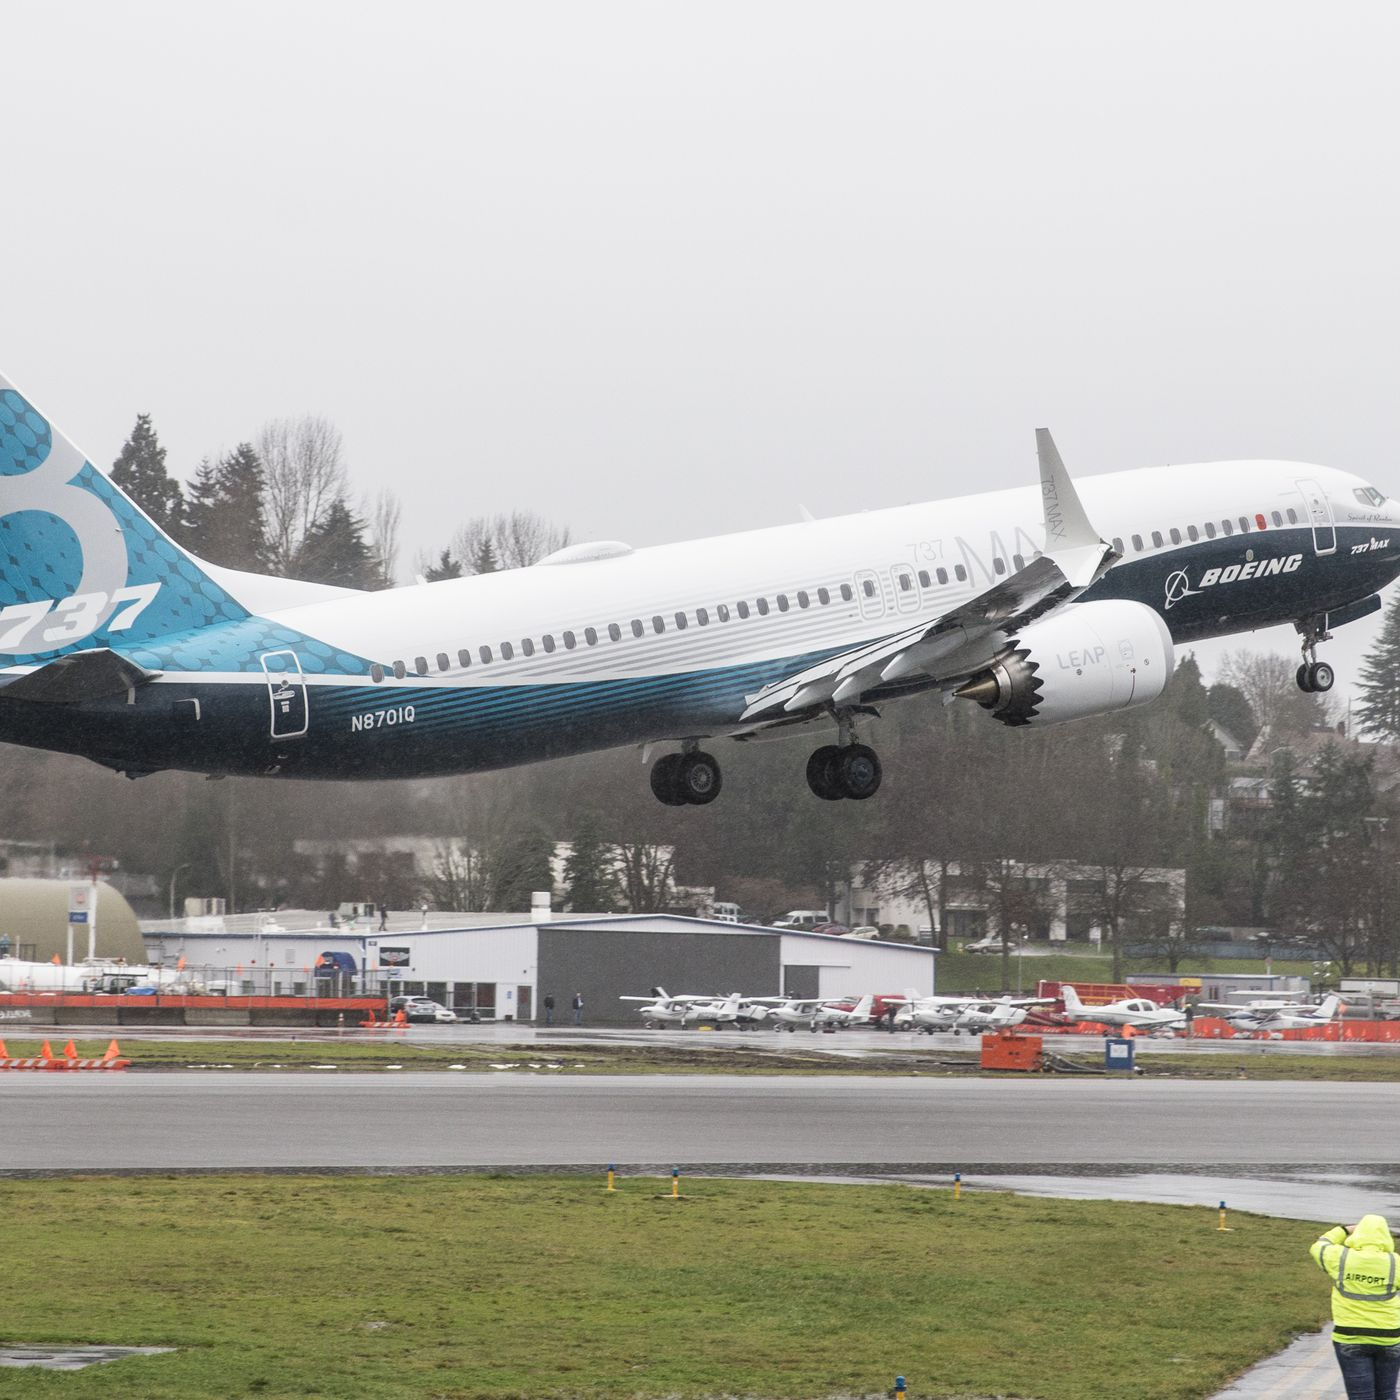 737 Max software update: Boeing and FAA approval - Vox